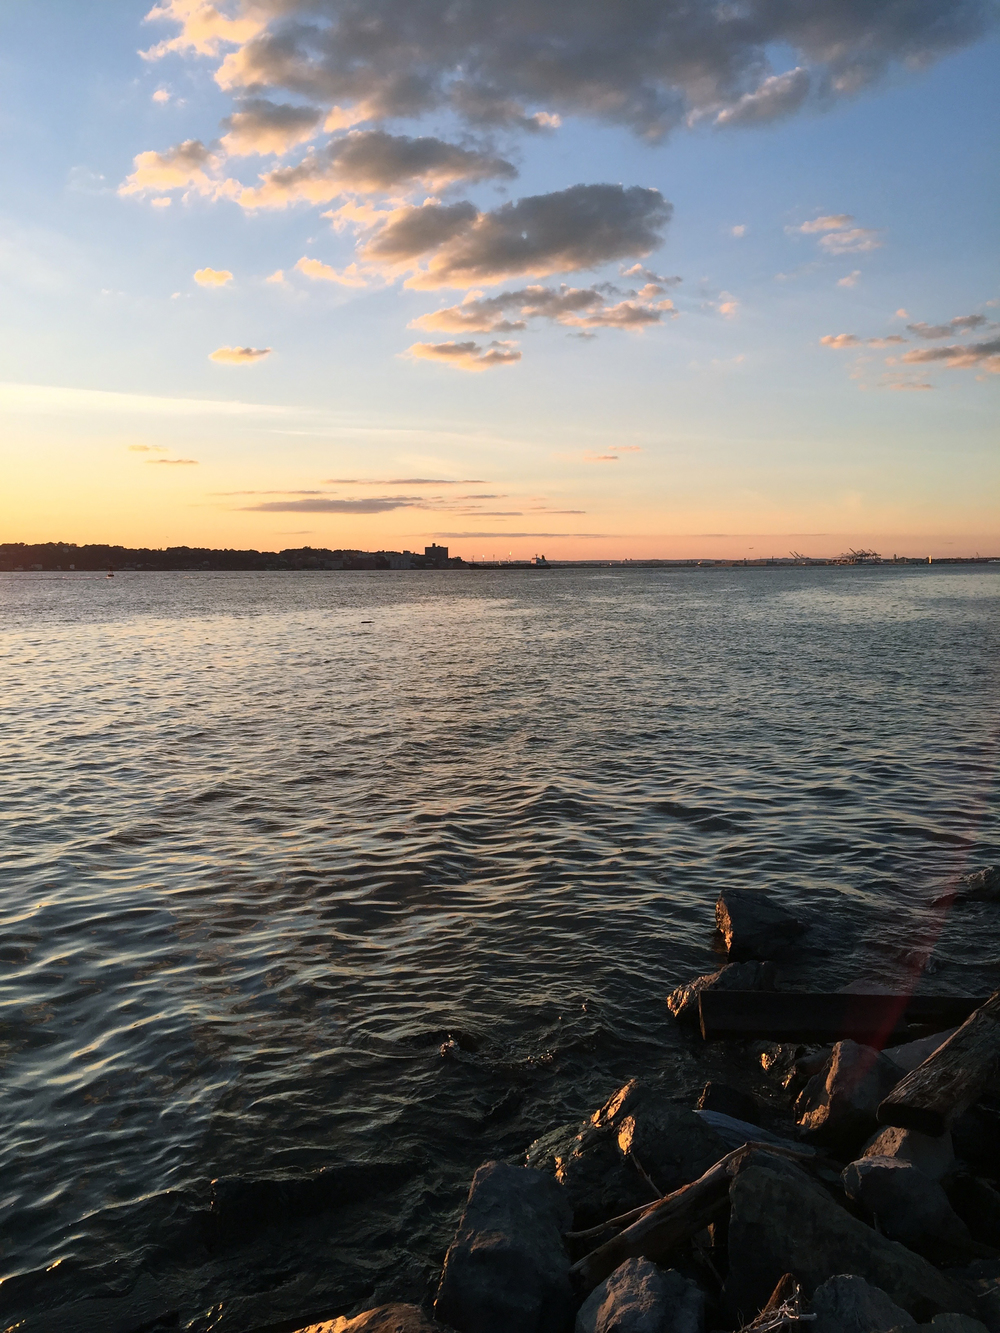 The North-Eastern shore of Staten Island, shot from the Brooklyn side of the Narrows at sunset in late summer - August 28, 2015